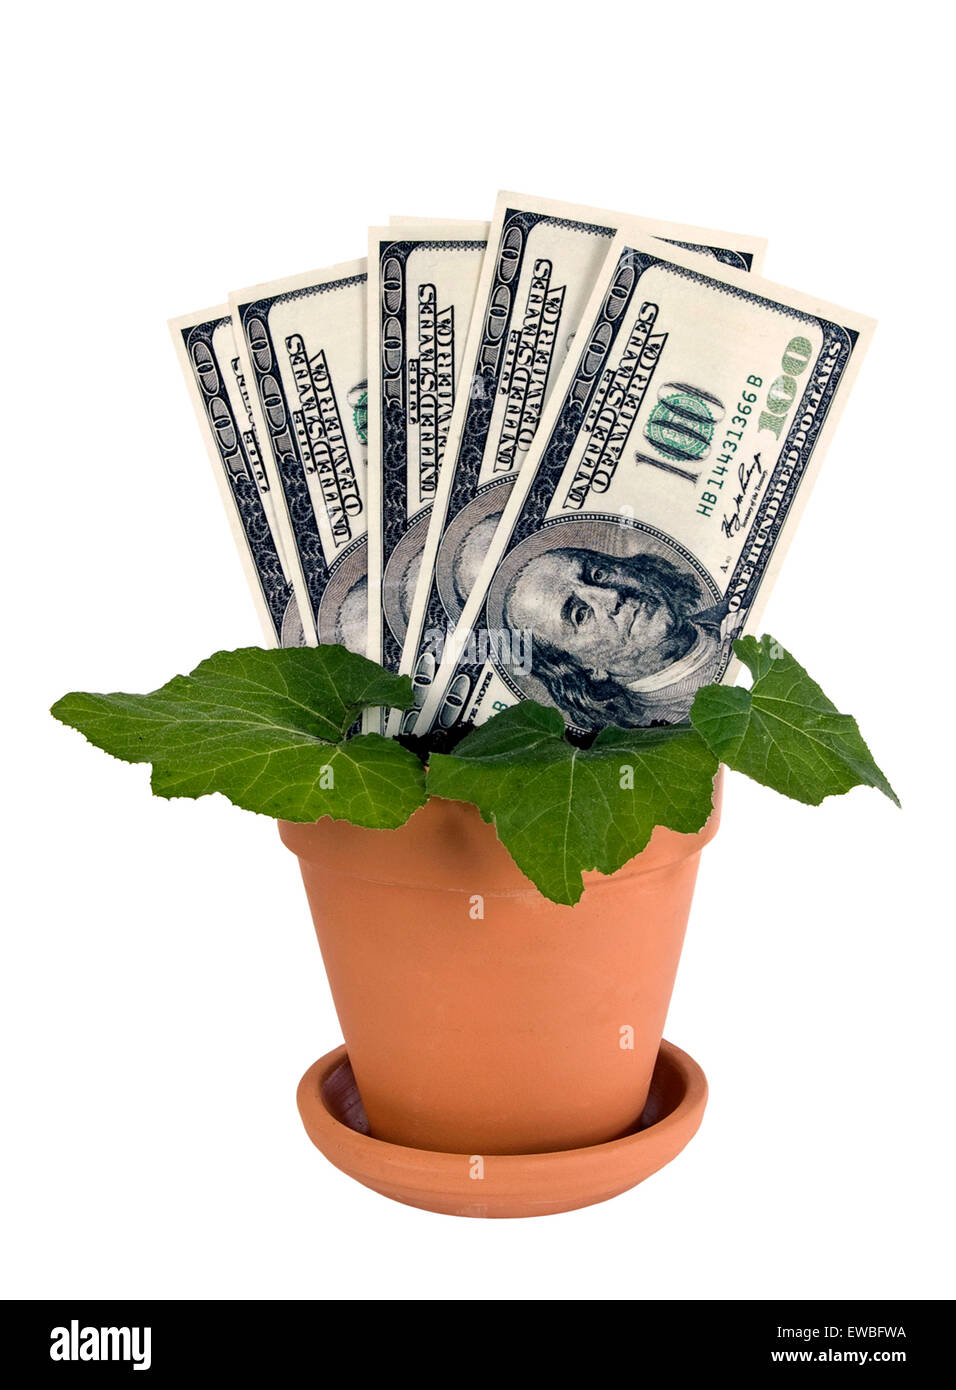 Money plant using U. S. dollars in clay pot isolated on white - Stock Image